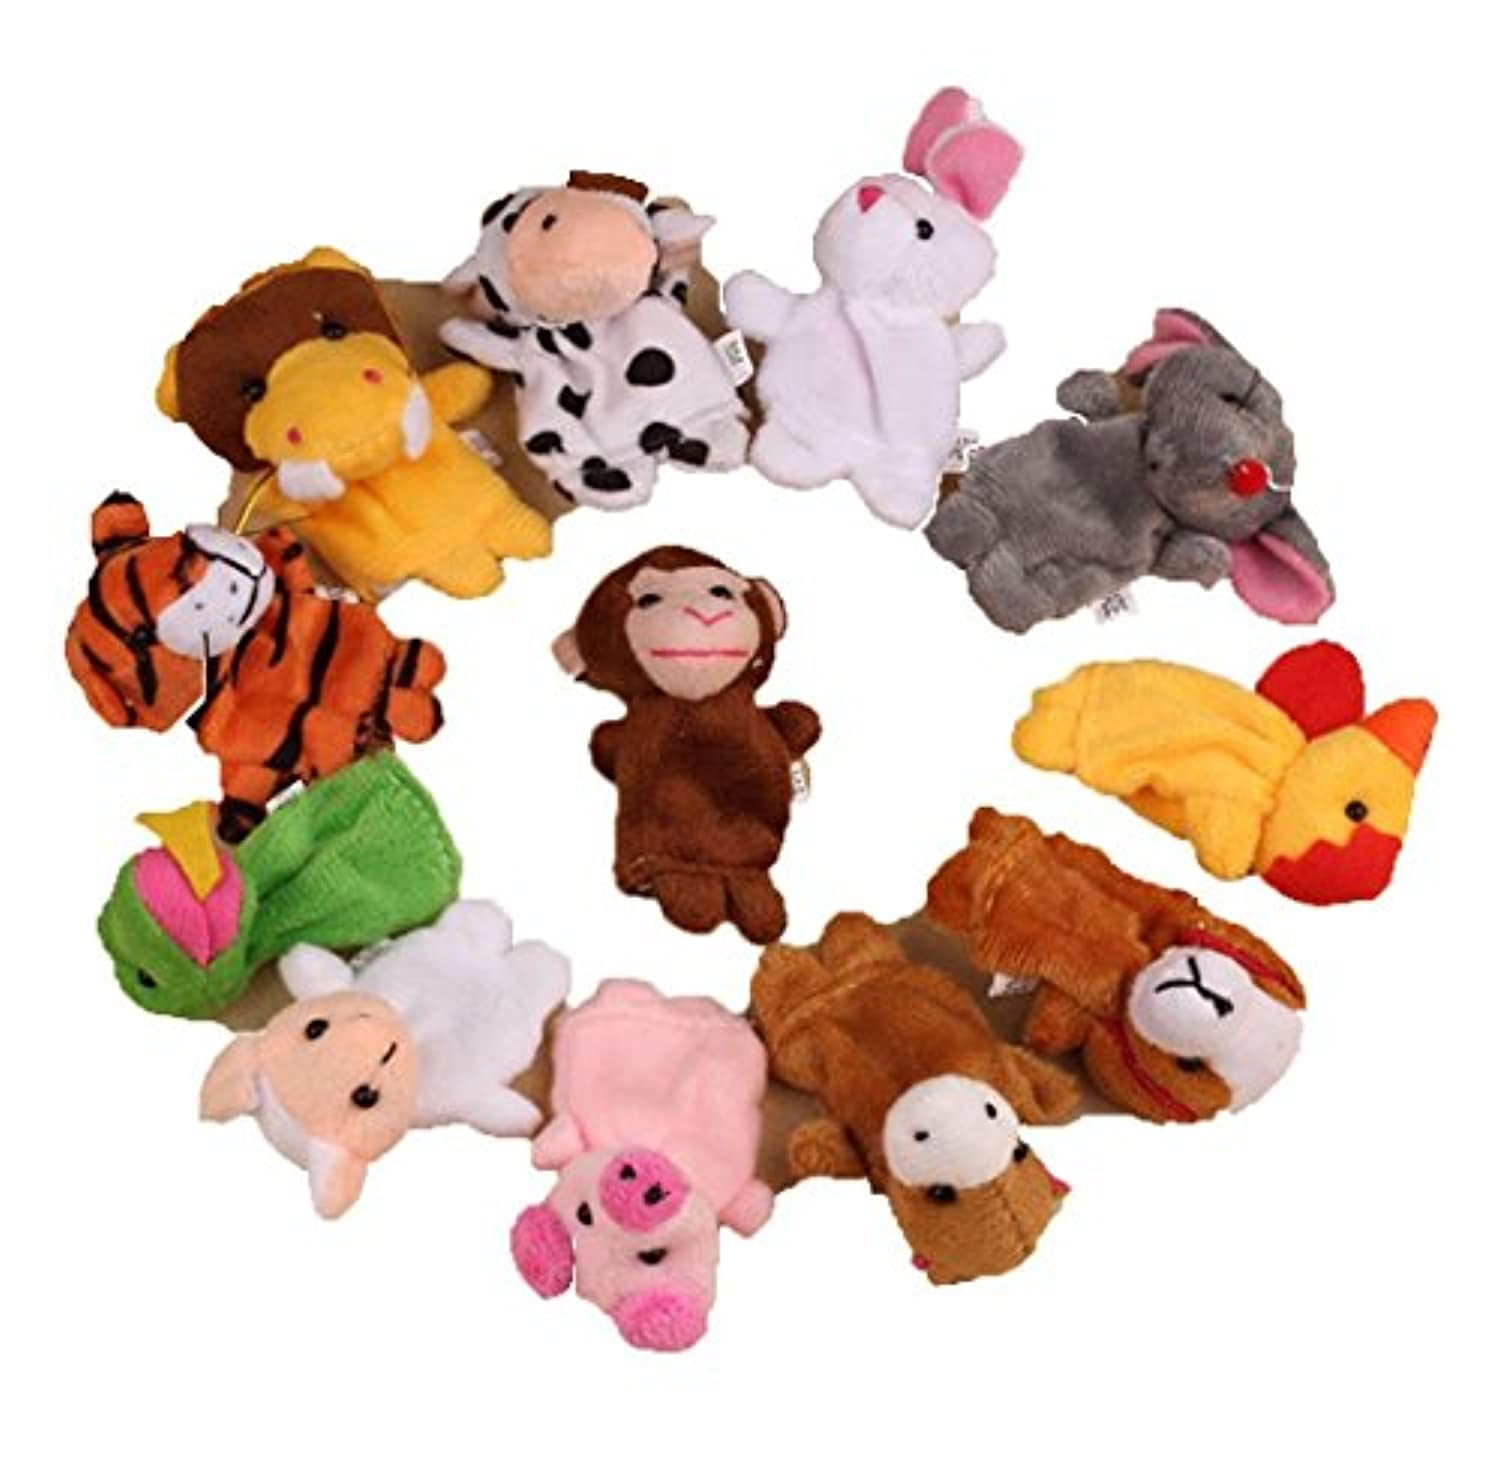 (Colorfol) - 12Pcs Chinese Zodiac Finger Toys,Hemlock Kids Cute Soft Animal Finger Puppet Playing Toys (Colorfol)